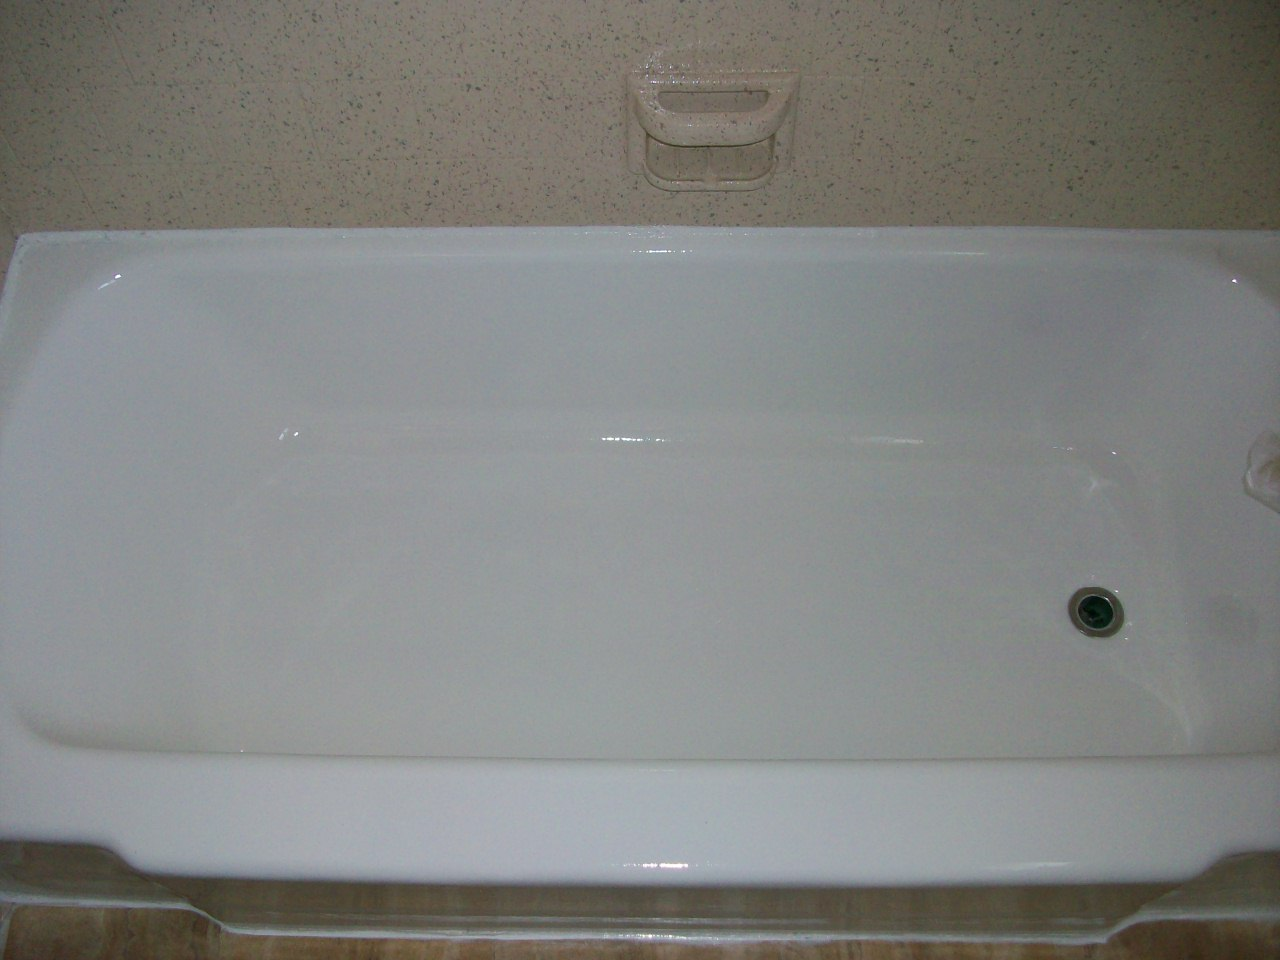 Porcelain tub (after, high gloss white)